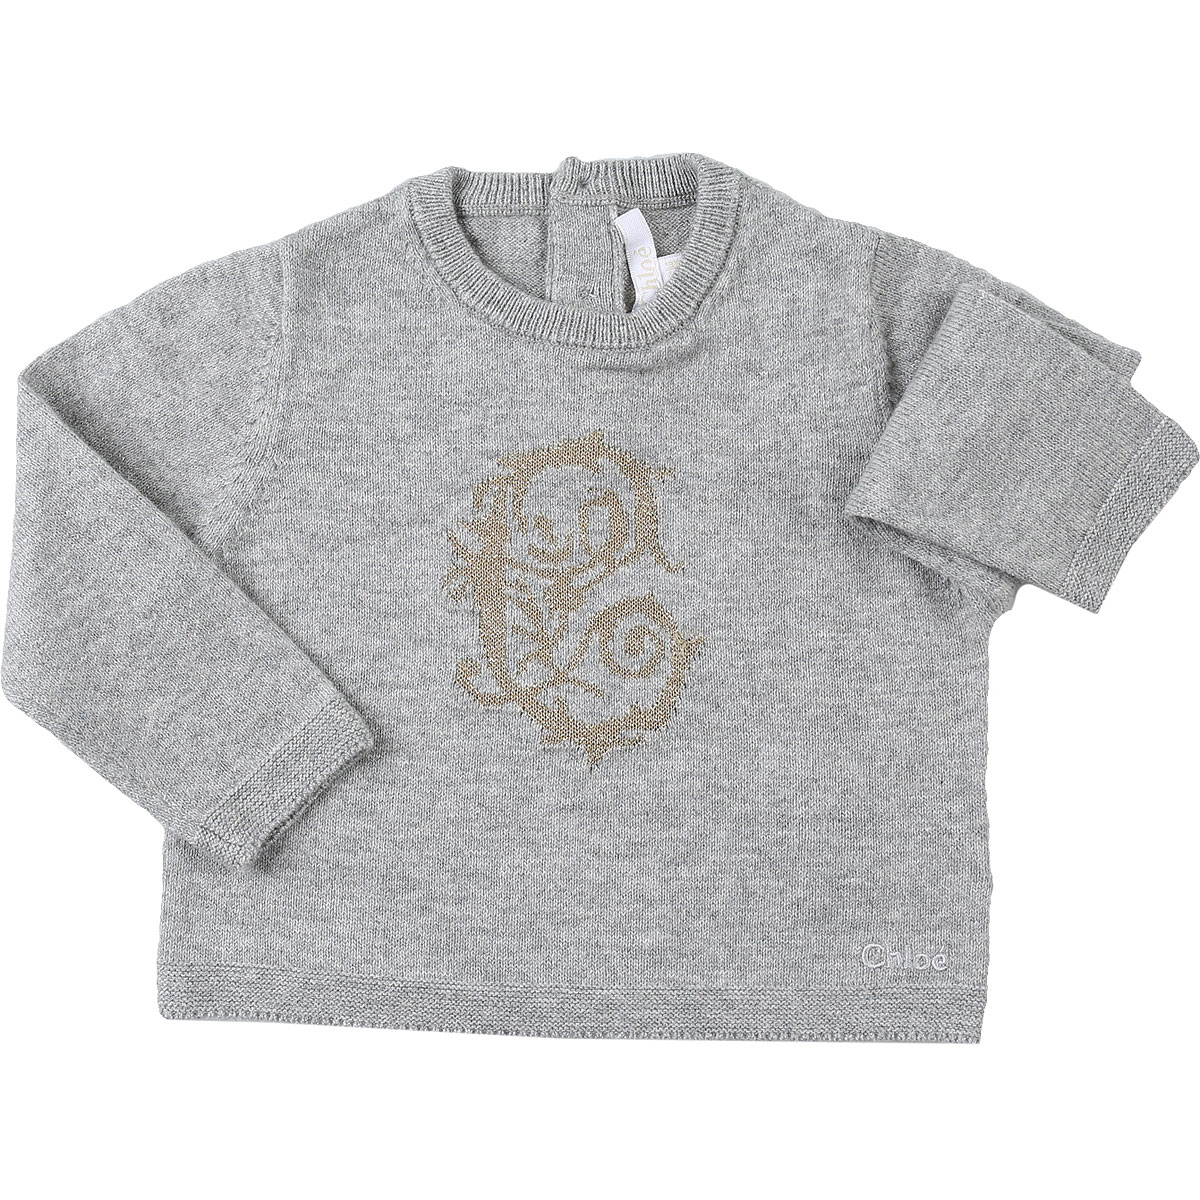 Chloe Baby Sweaters for Girls On Sale, Grey Melange, Cotton, 2019, 12M 18M 2Y 6M